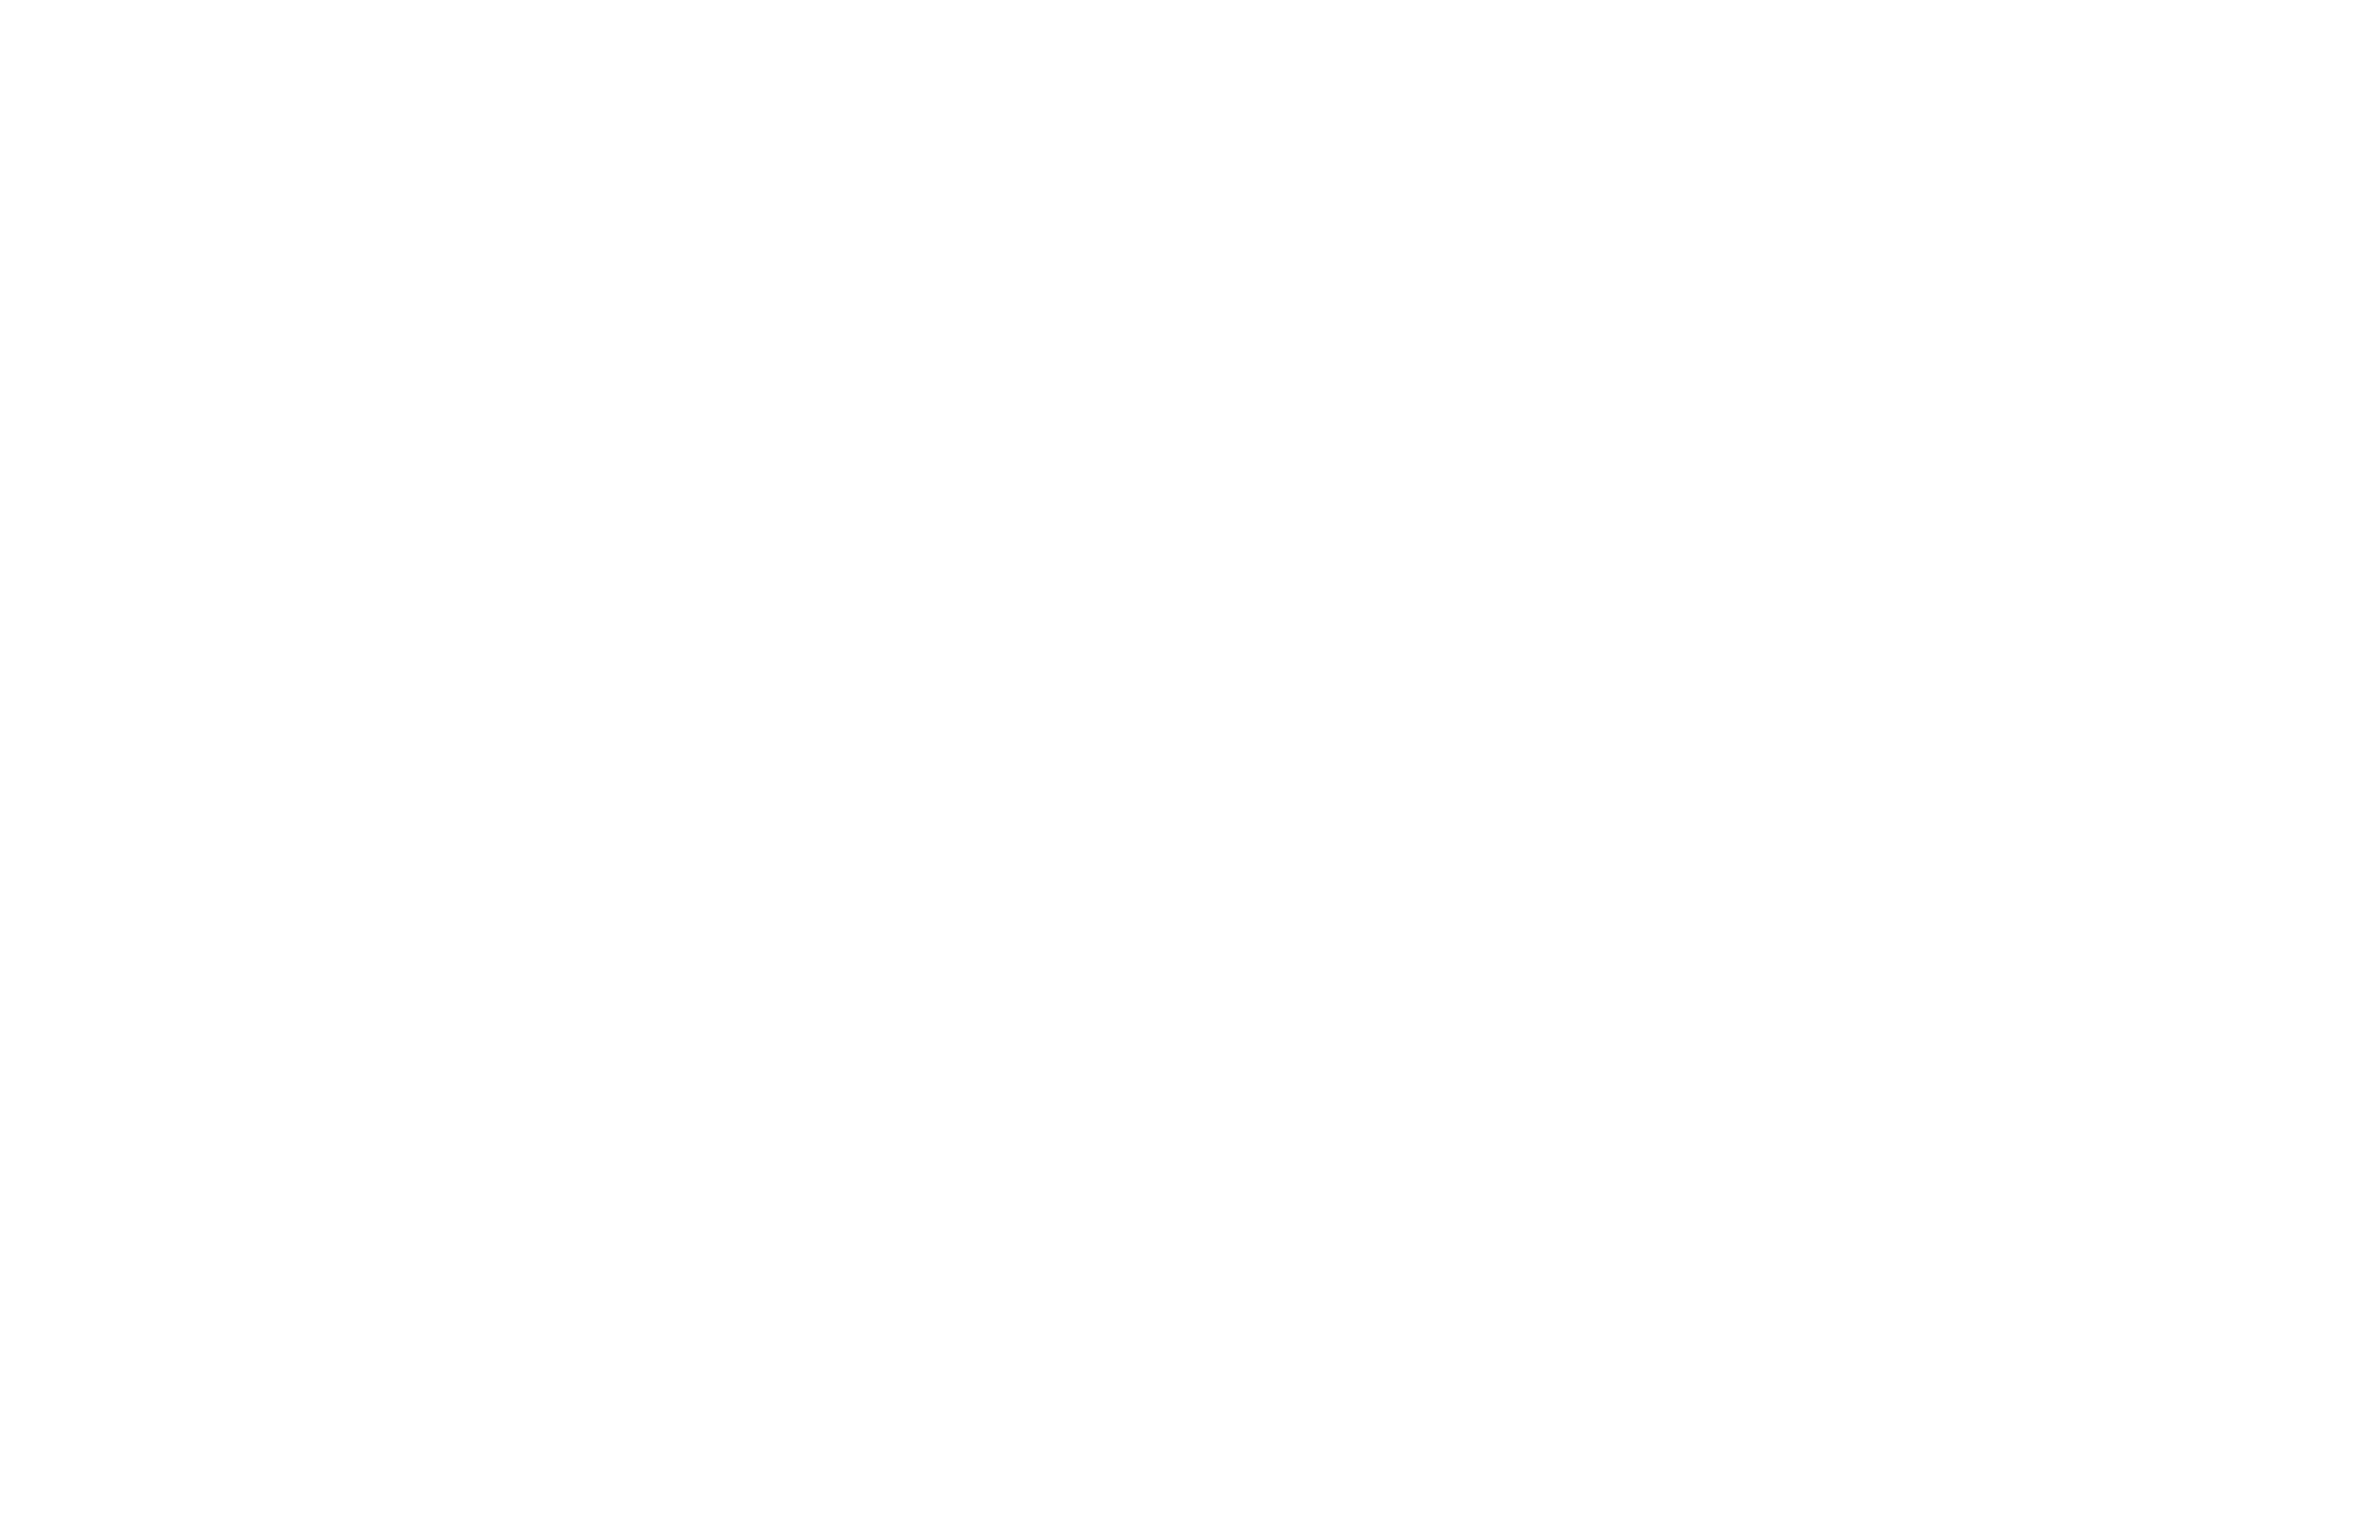 Polly's fitting room